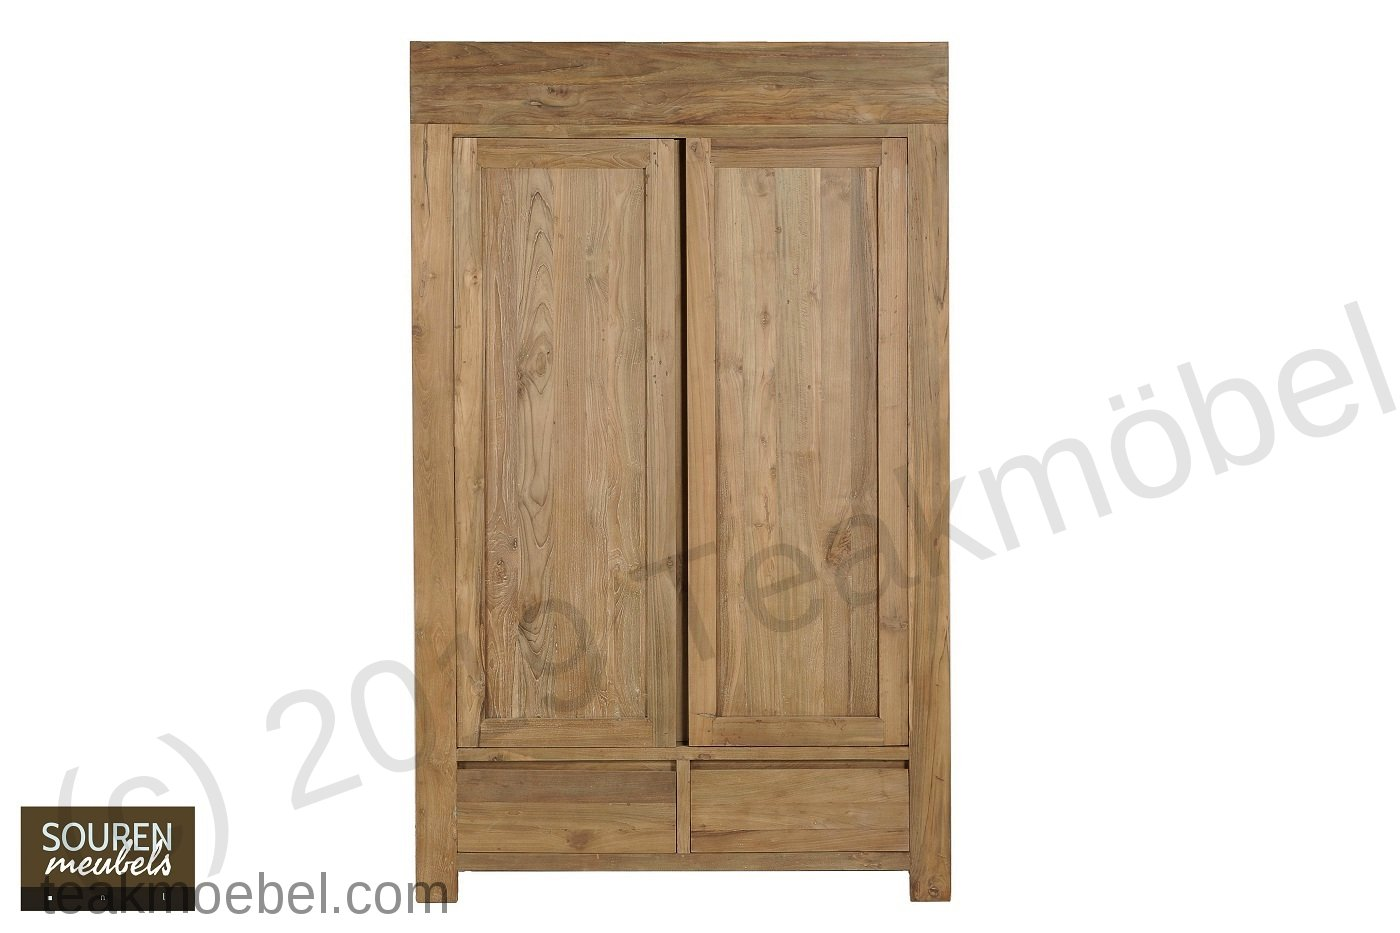 teak kleiderschrank modern teakm. Black Bedroom Furniture Sets. Home Design Ideas